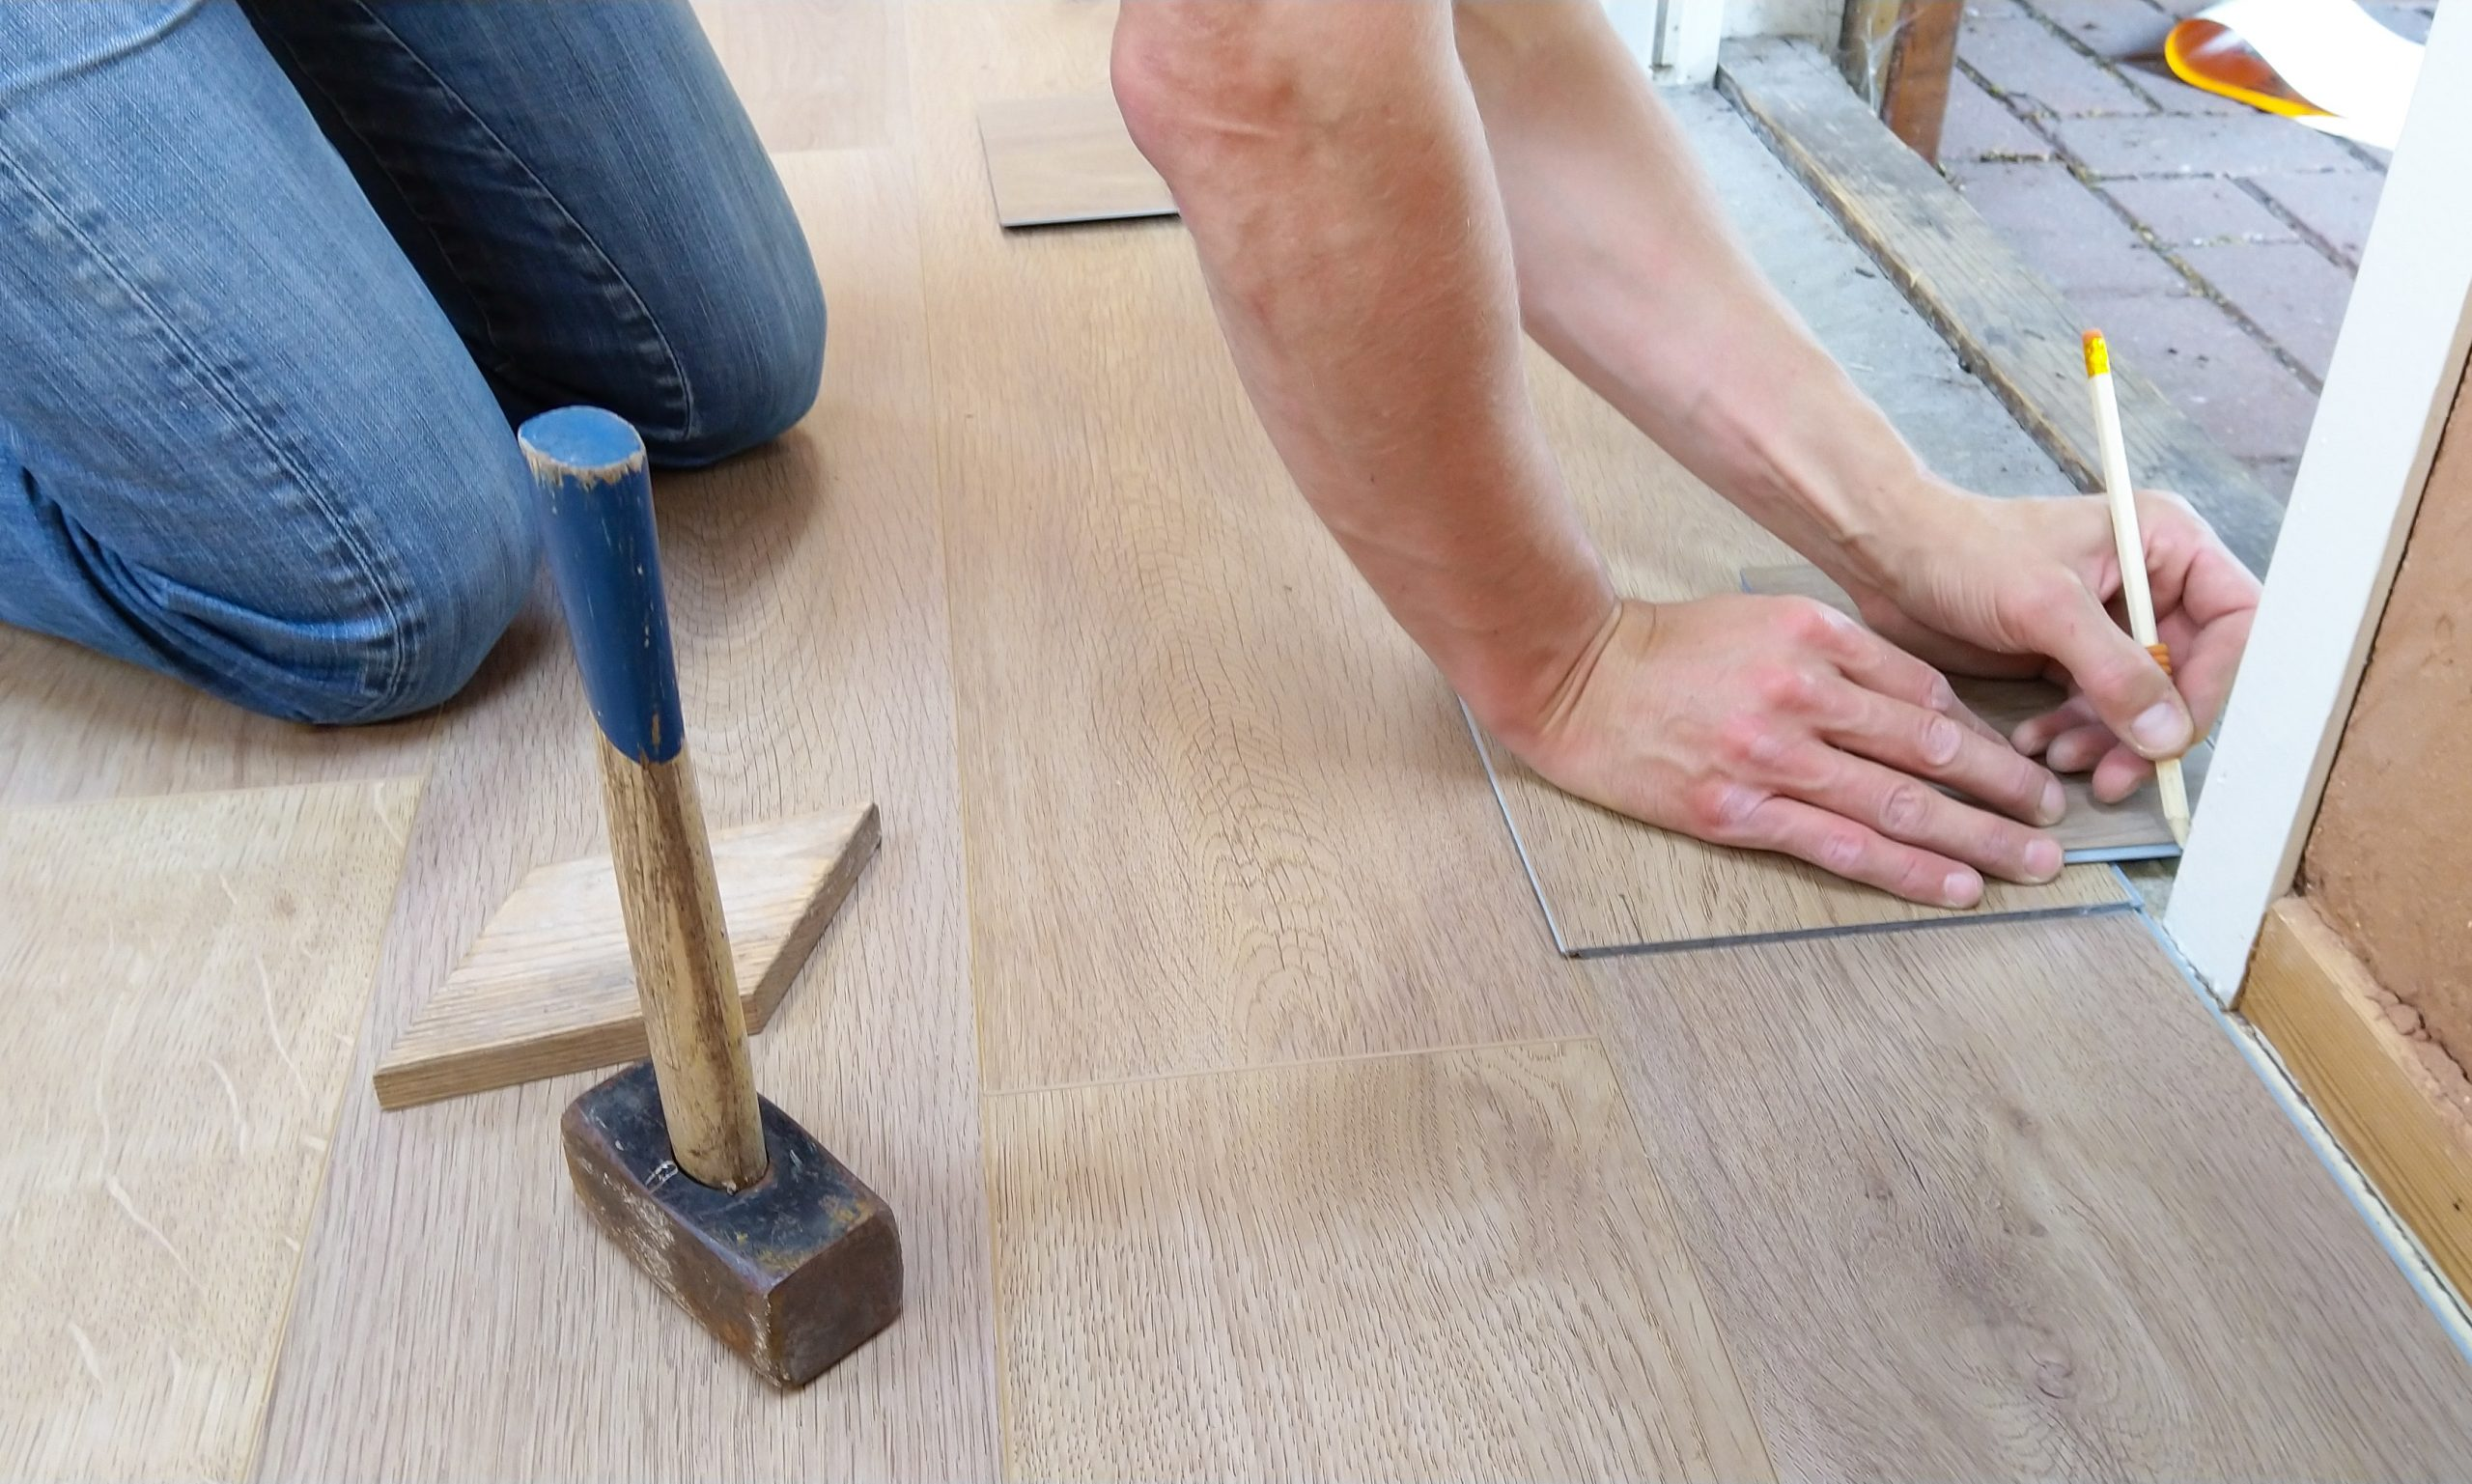 person installing flooring inside a home